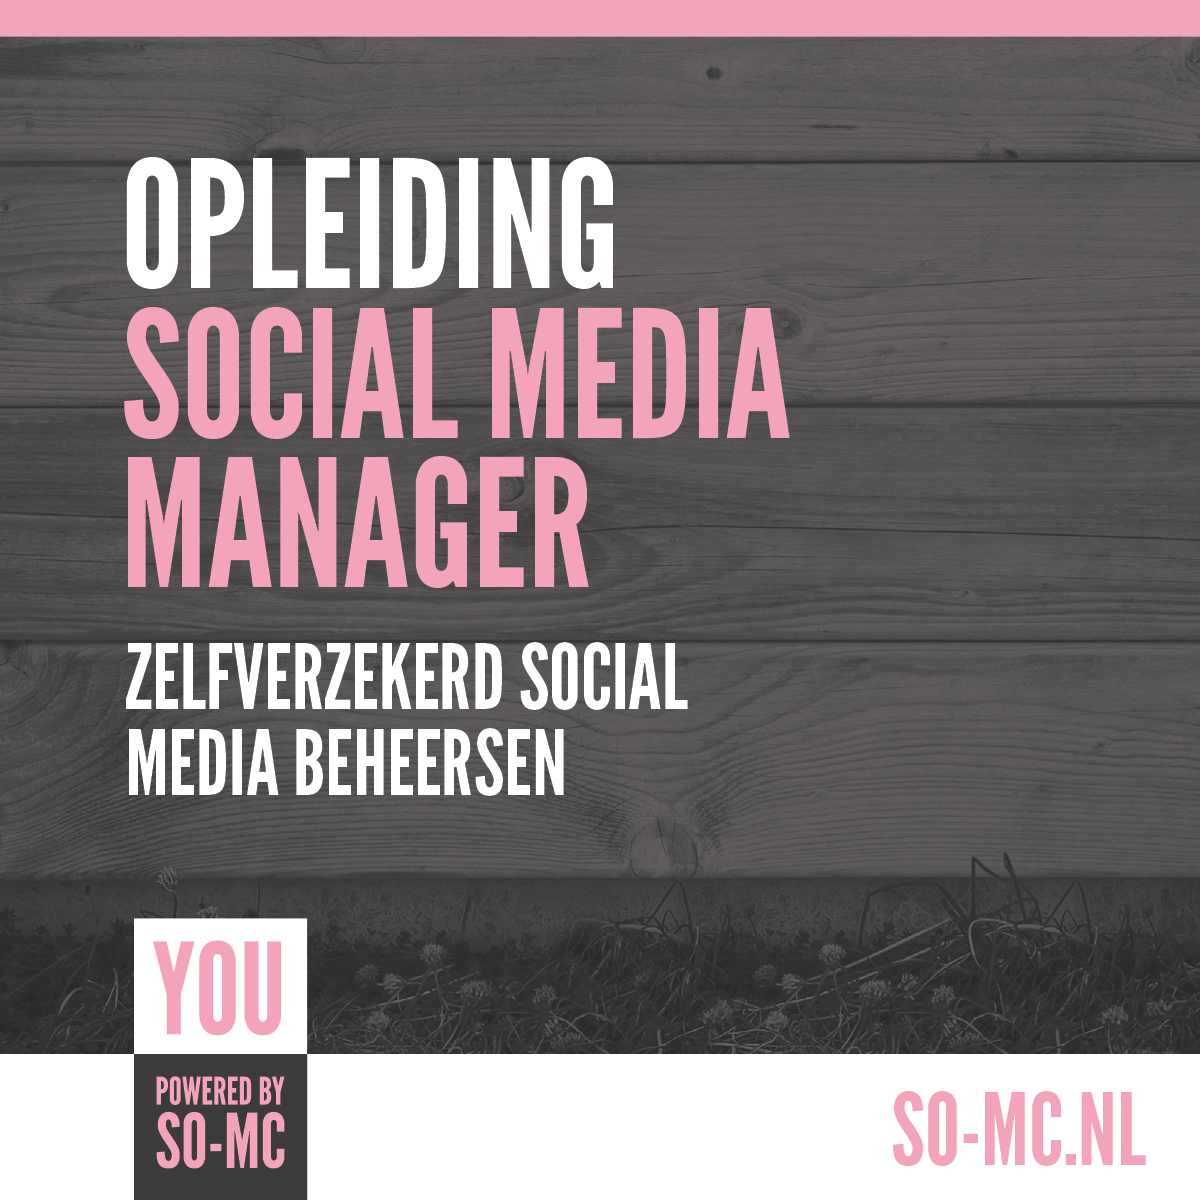 Opleiding Social Media Manager